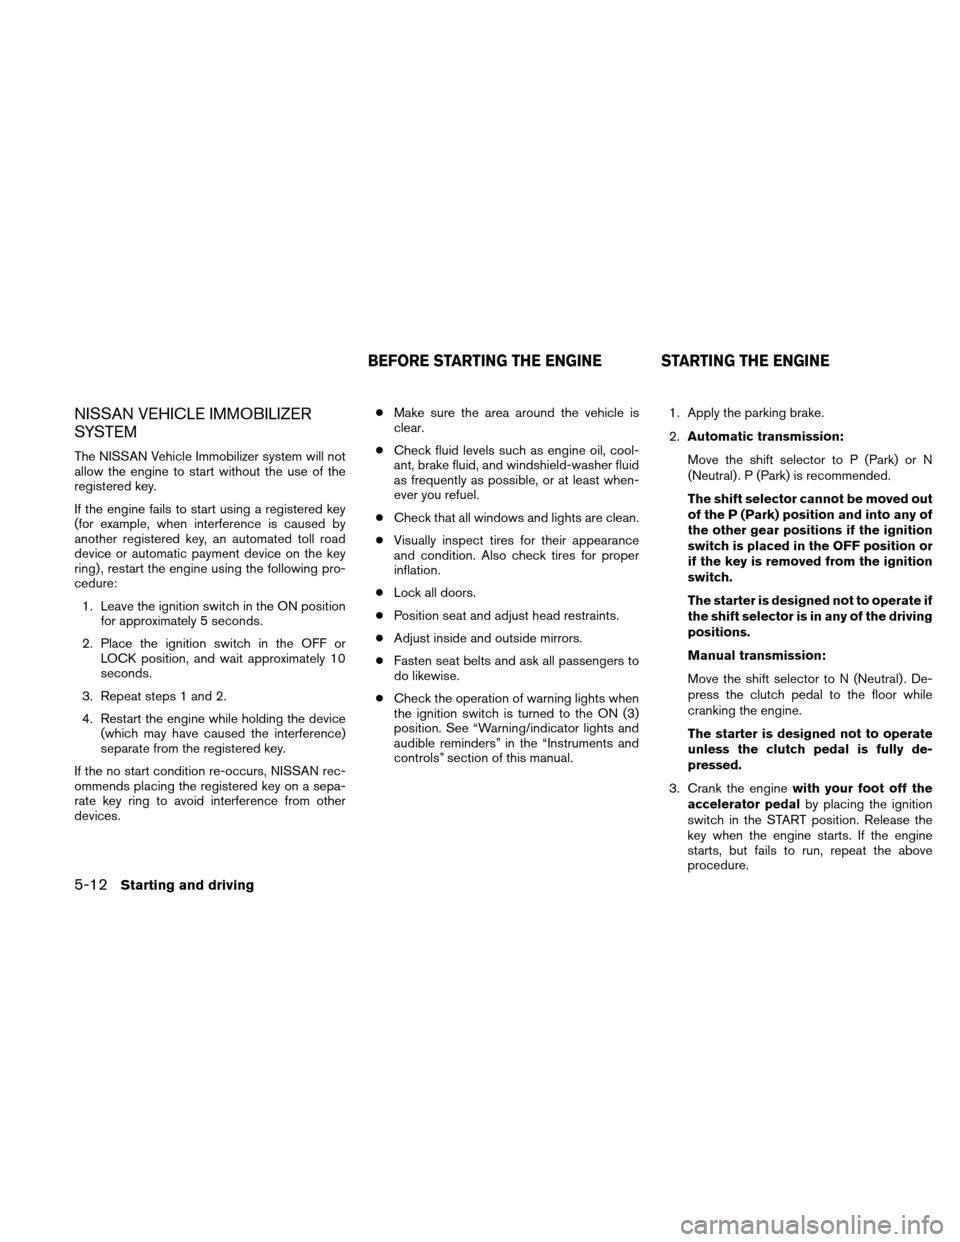 NISSAN XTERRA 2011 N50 / 2.G Owners Manual, Page 207